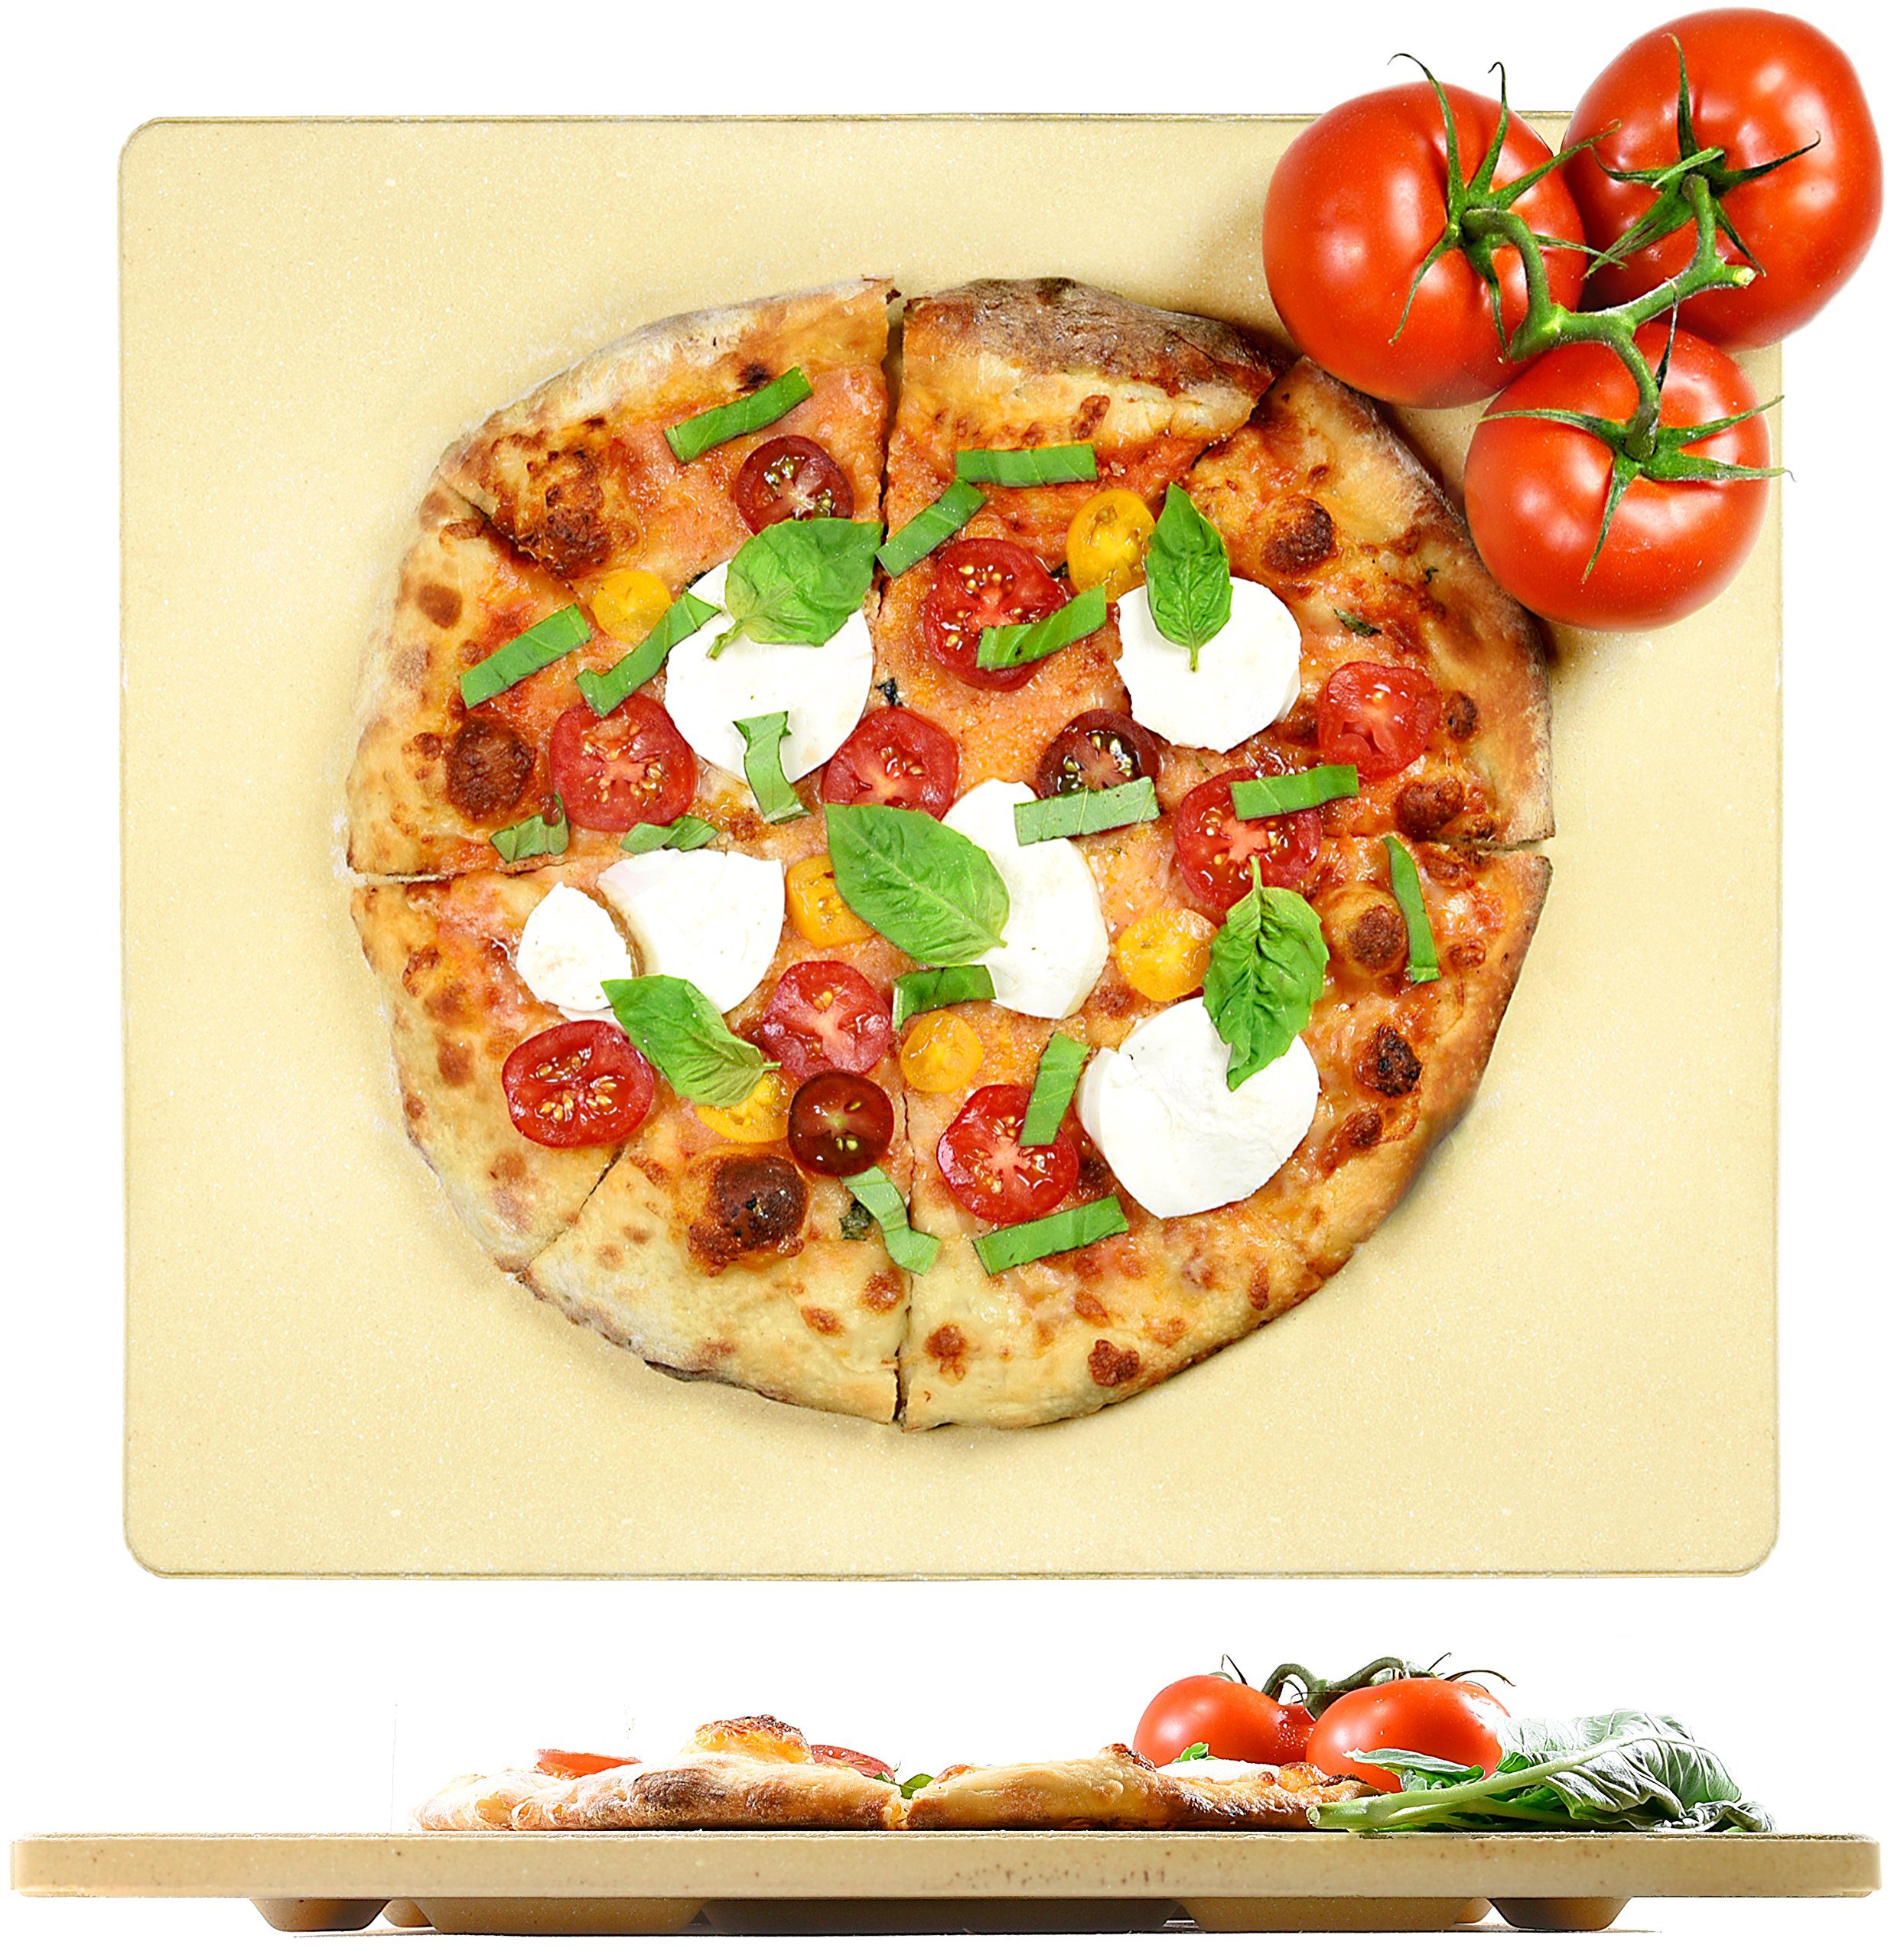 Crustina Pizza Stone Rectangular - 14'' x 16'' - Baking Stone, Best Pizza Stone for Oven and for Pizza on the Grill, Pizza Cooking Stone Fits All Standard Oven and BBQ by Crustina (Image #1)